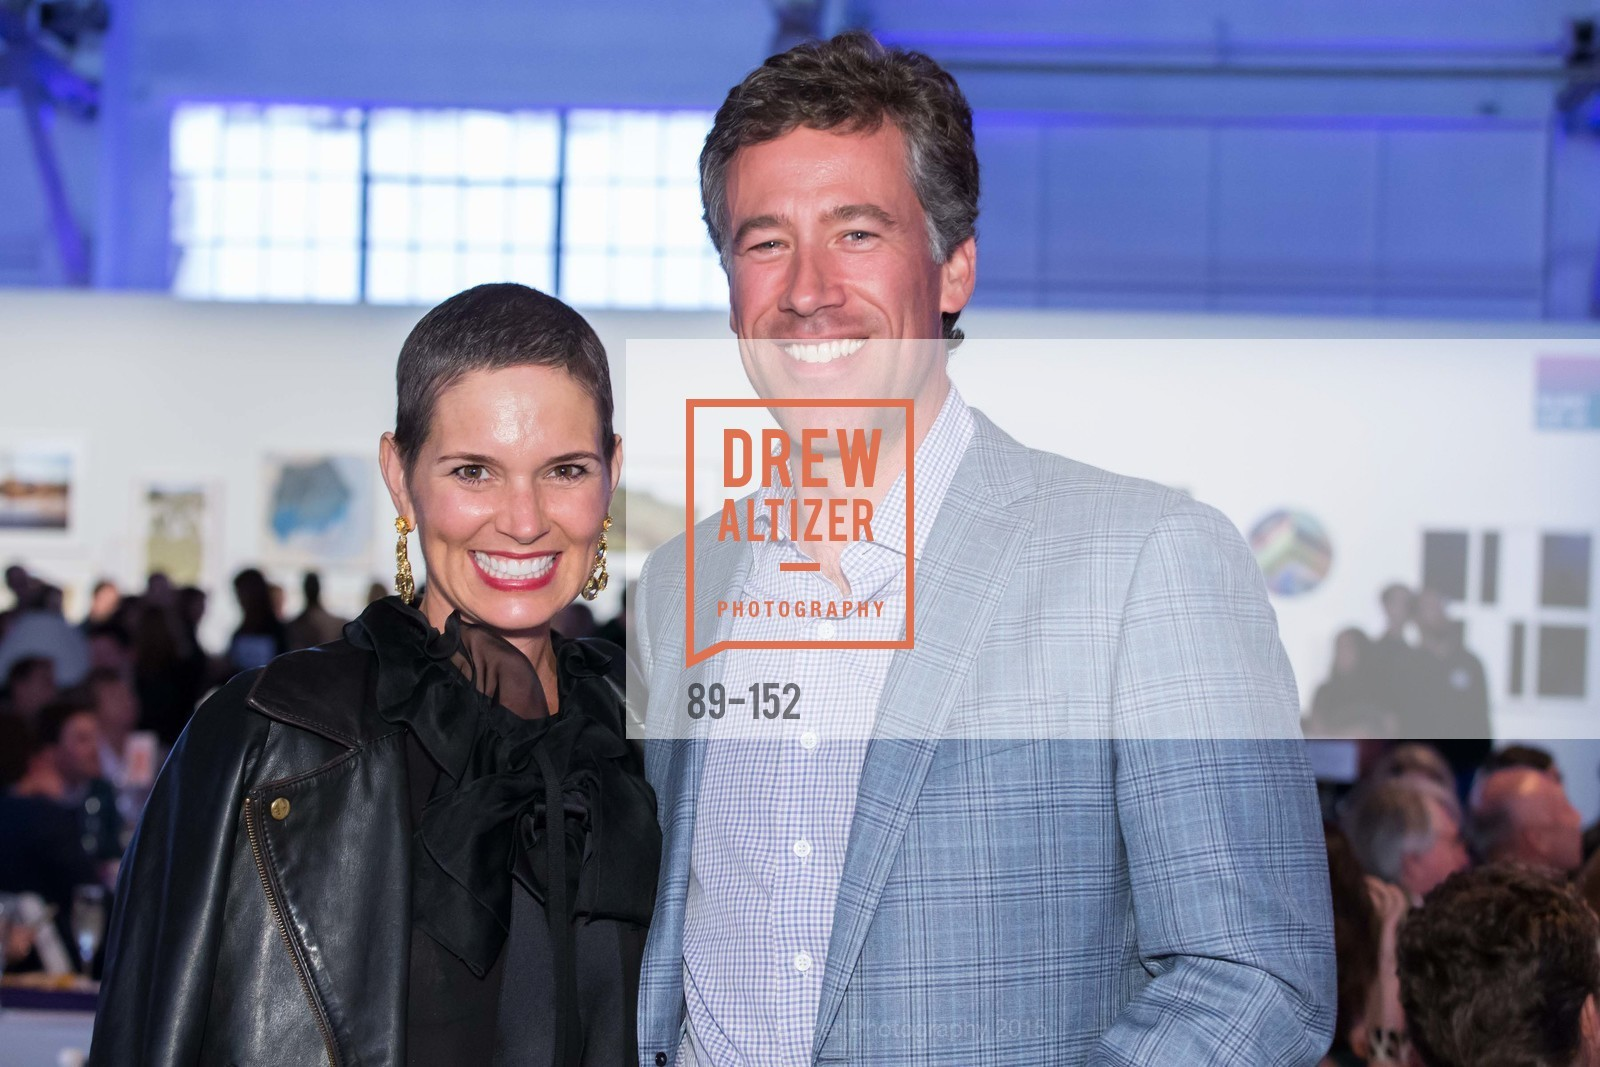 Susan Moody, Ryan Simon, Headlands Center for the Arts Benefit Auction, Fort Mason Festival, Pavilon, June 2nd, 2015,Drew Altizer, Drew Altizer Photography, full-service agency, private events, San Francisco photographer, photographer california